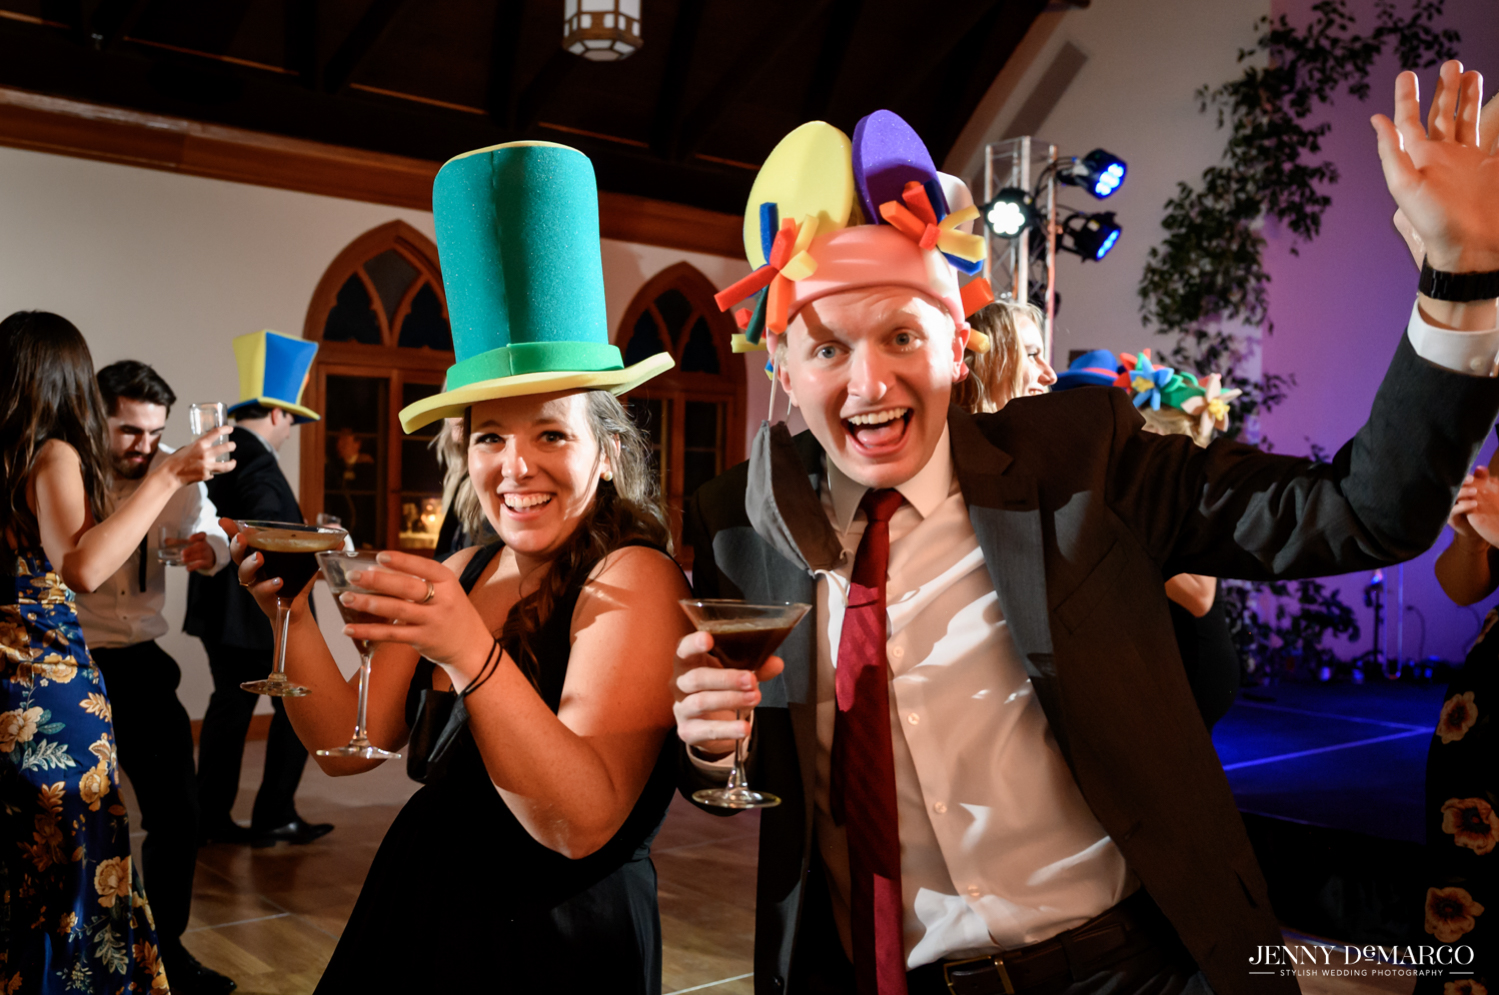 guests dancing and enjoying the wedding celebration with foam party hats on